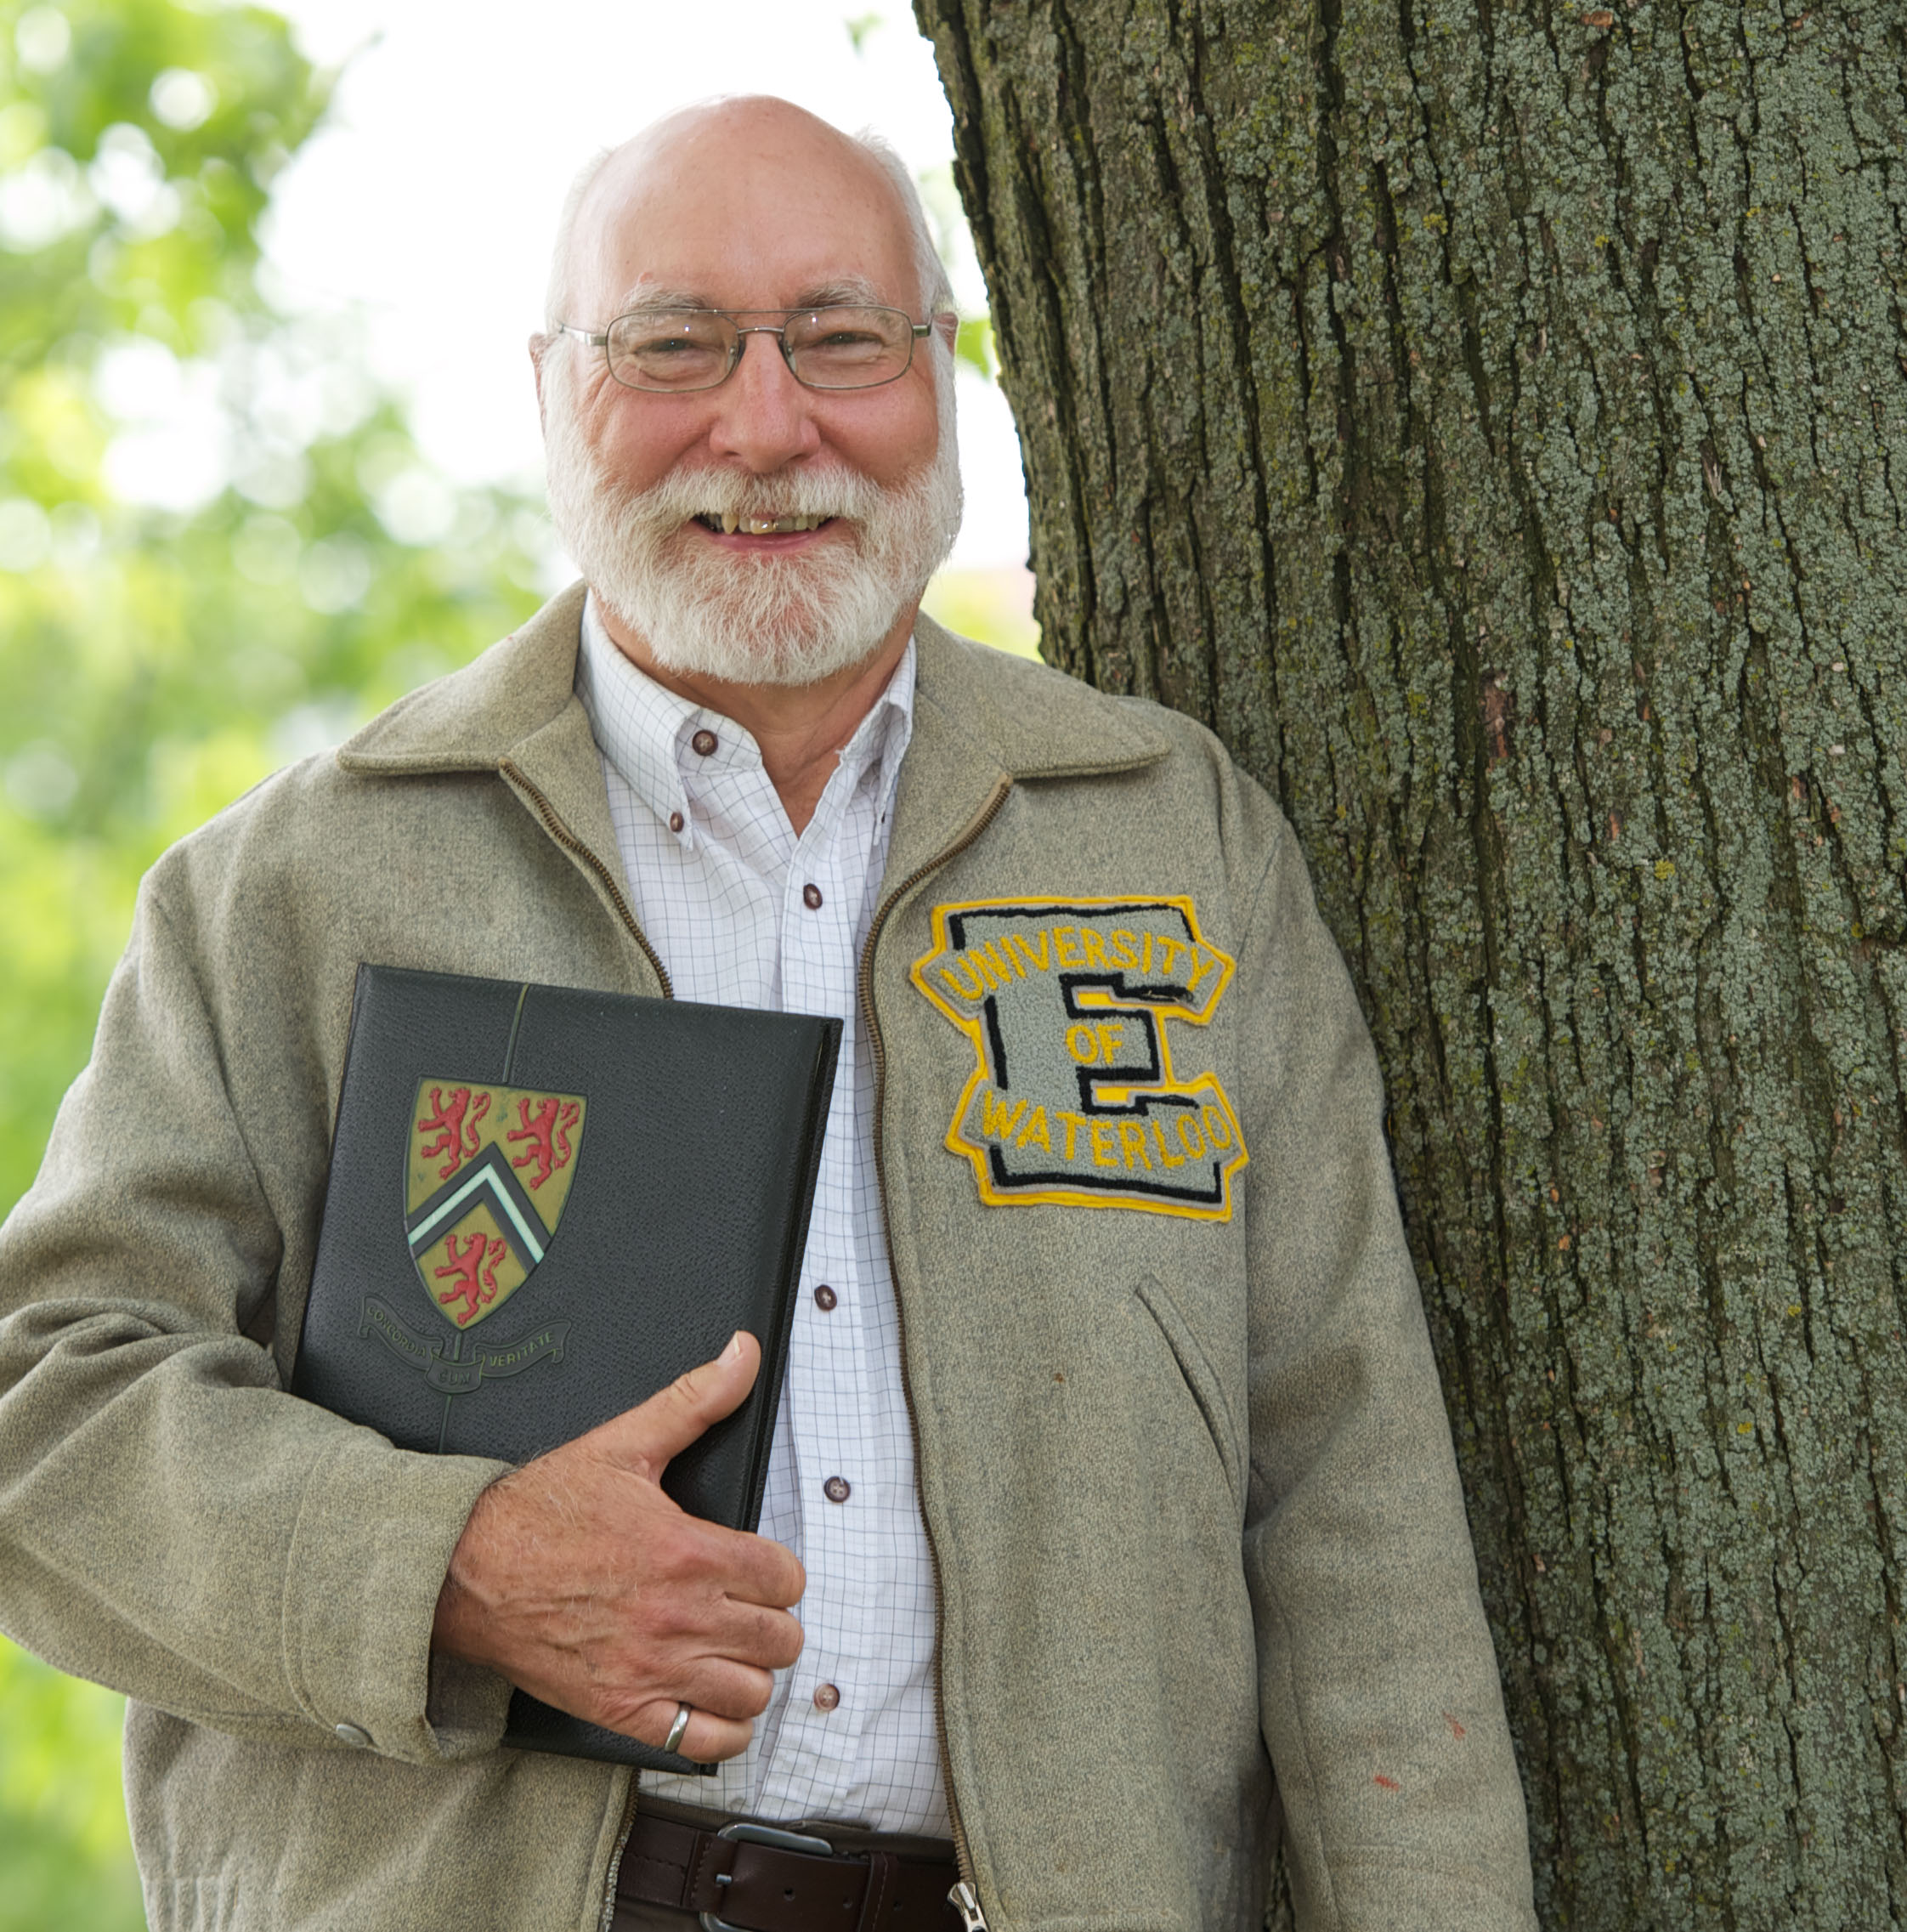 Bill Lennox (BASc '62) wearing Waterloo Engineering jacket and holding yearbook